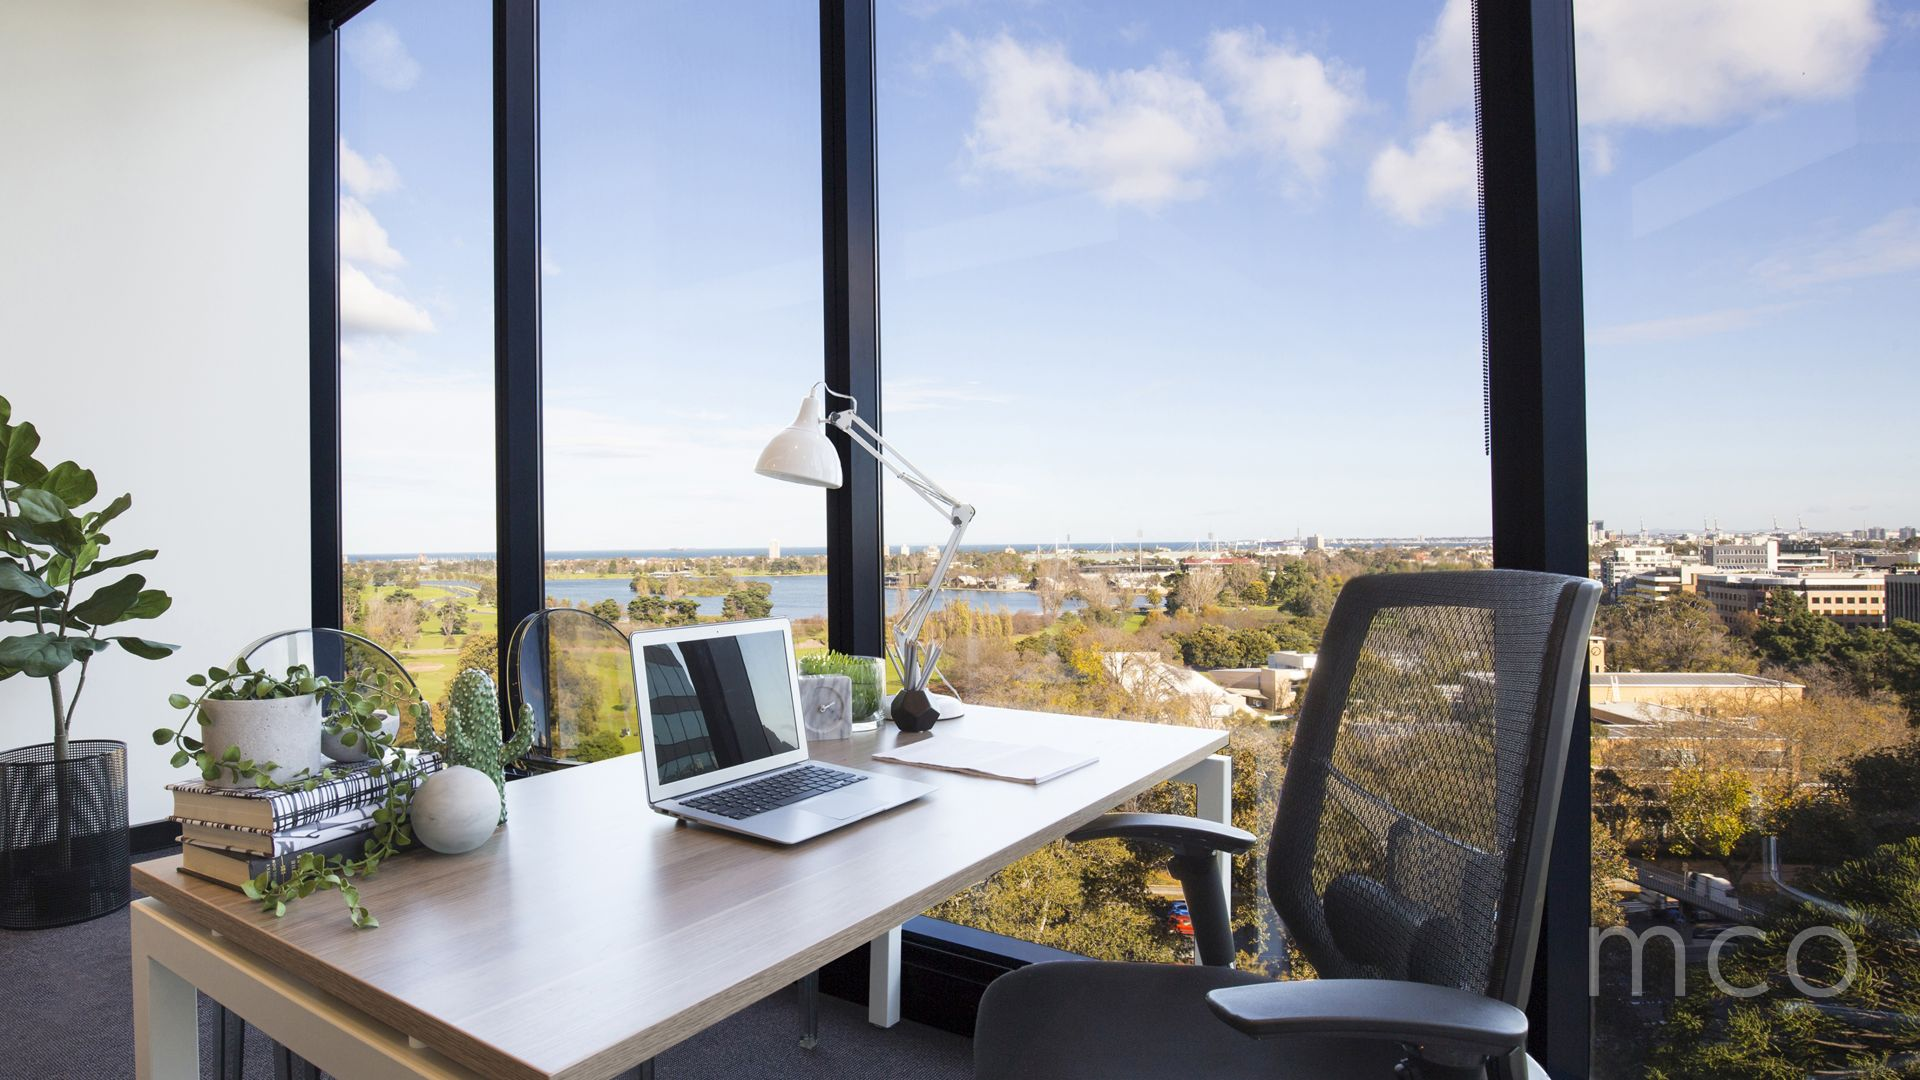 Lease a work space with a view at St Kilda Rd Towers!